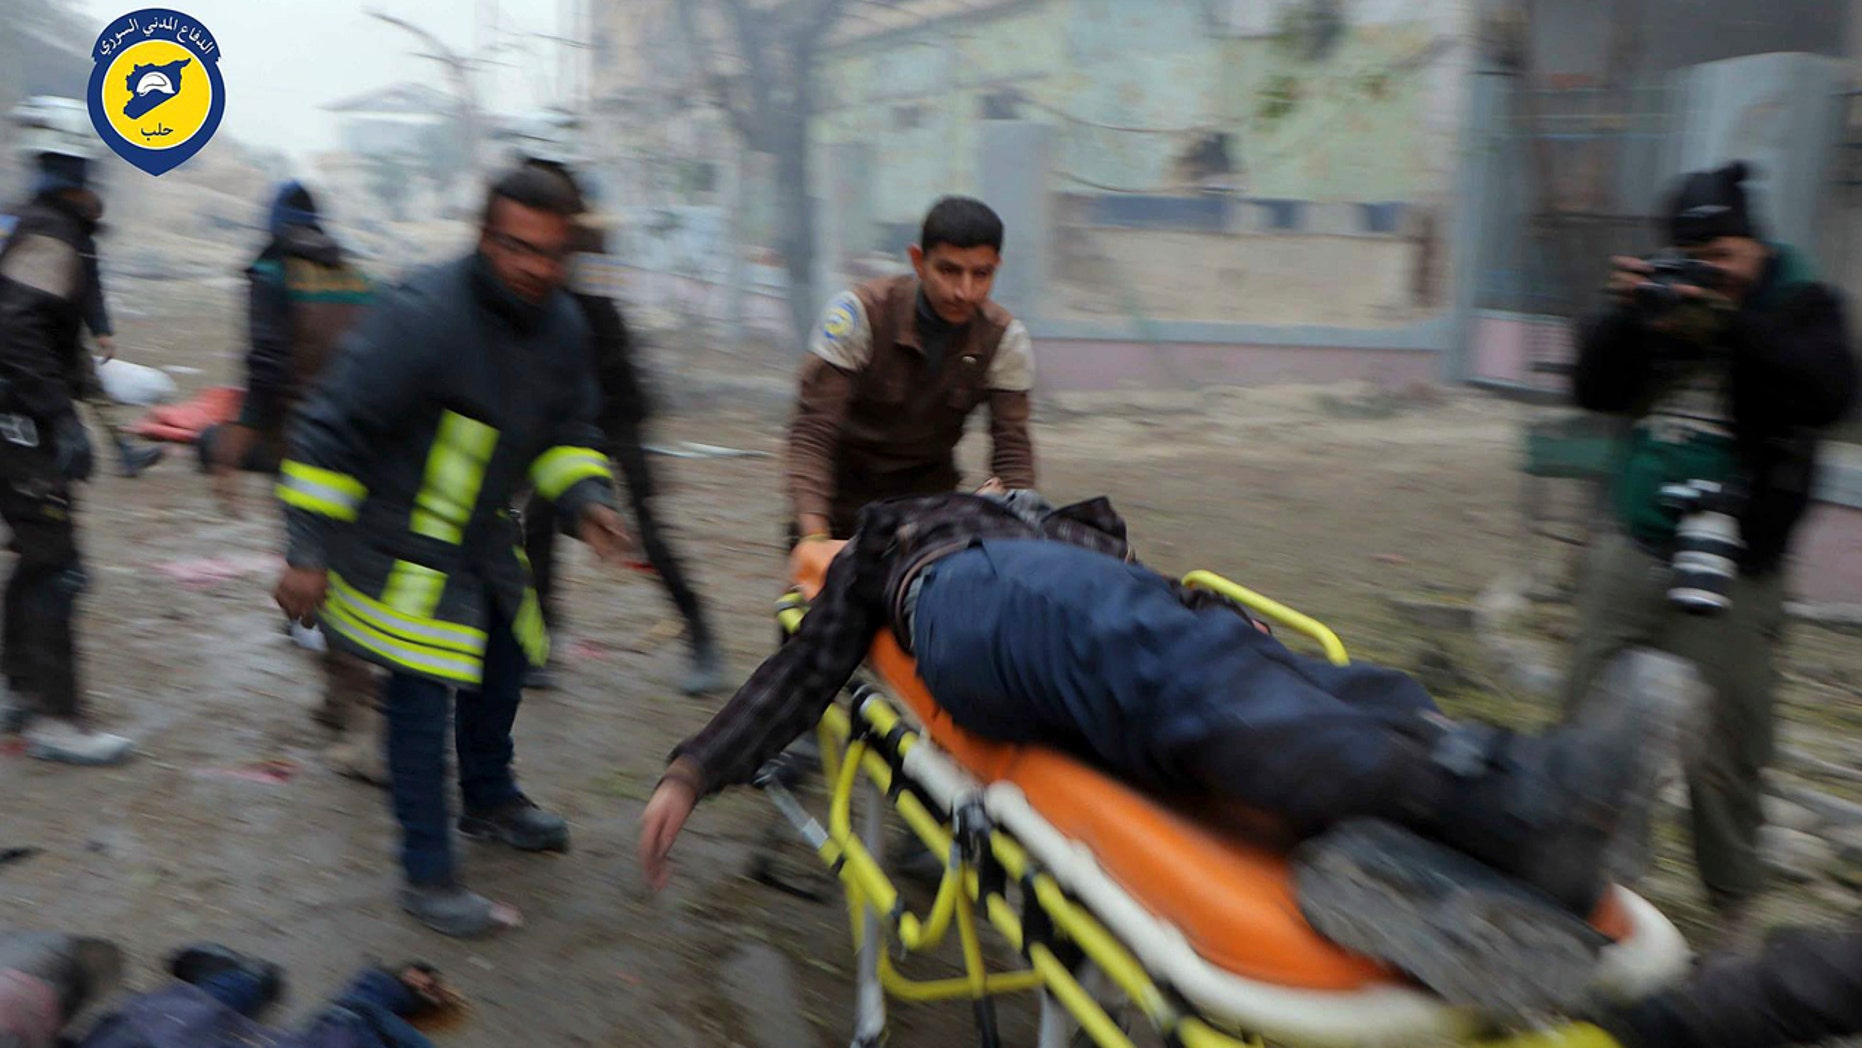 Nov. 30, 2016: This photo provided by the Syrian Civil Defense White Helmets, which has been authenticated based on its contents and other AP reporting, shows Civil Defense workers carrying a victim on a stretcher after artillery fire struck the Jub al-Quba district in Aleppo.